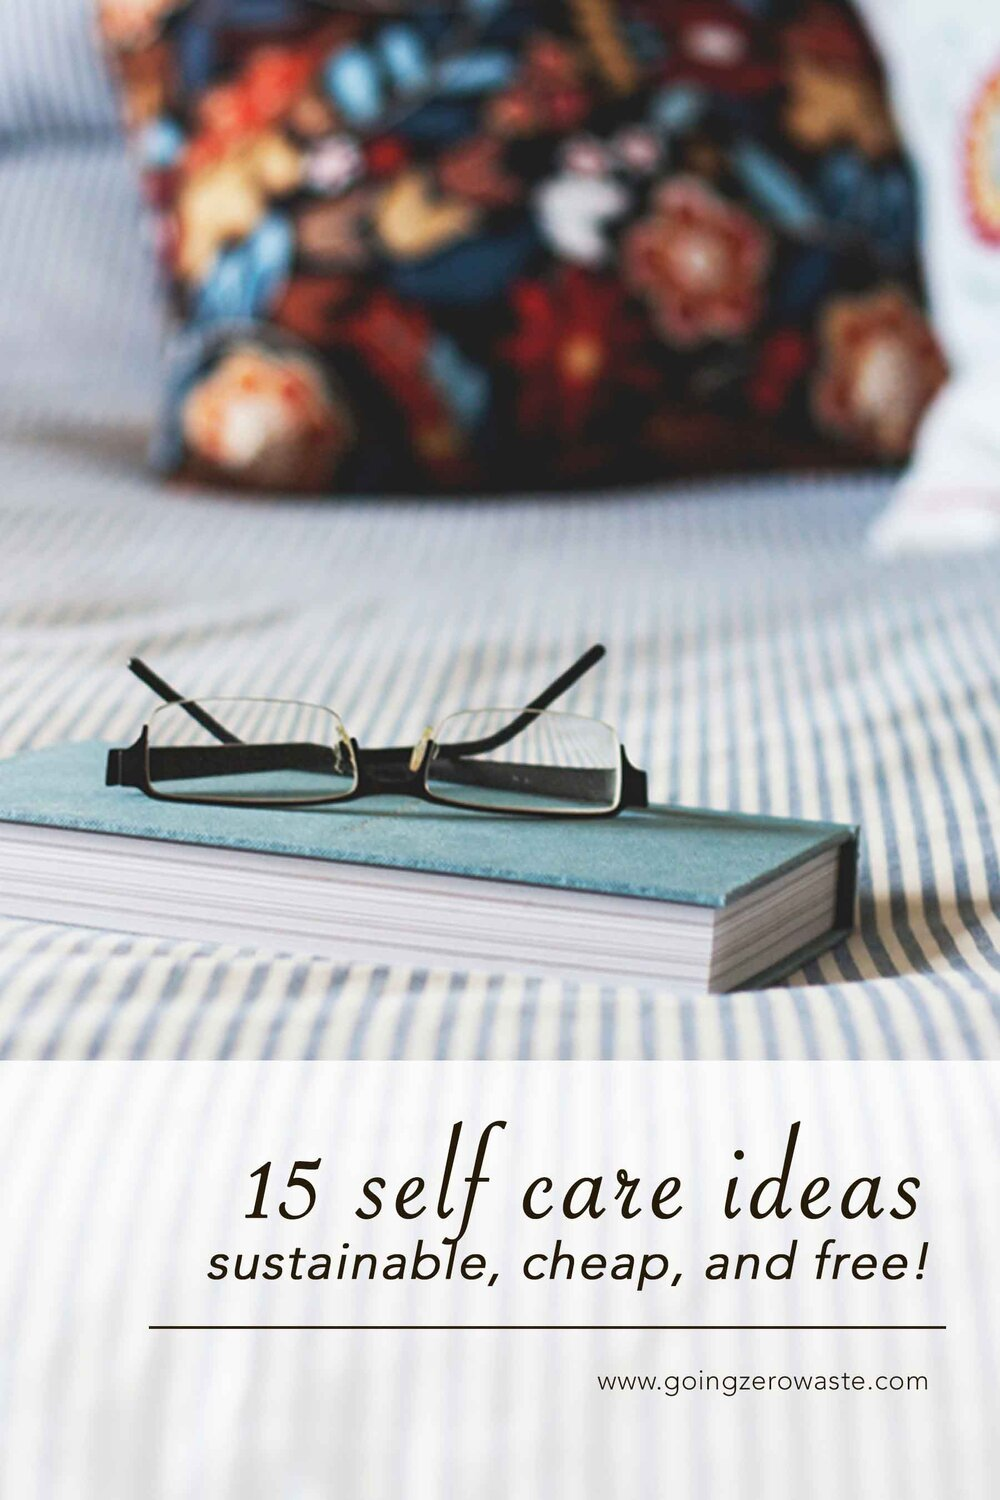 Sustainable, ethical and cheap 15 self care ideas from www.goingzerowaste.com #selfcare #sustainable #cheap #free #selfcareideas #wellness #takecareofyourself #pamperyourself #athome #inside